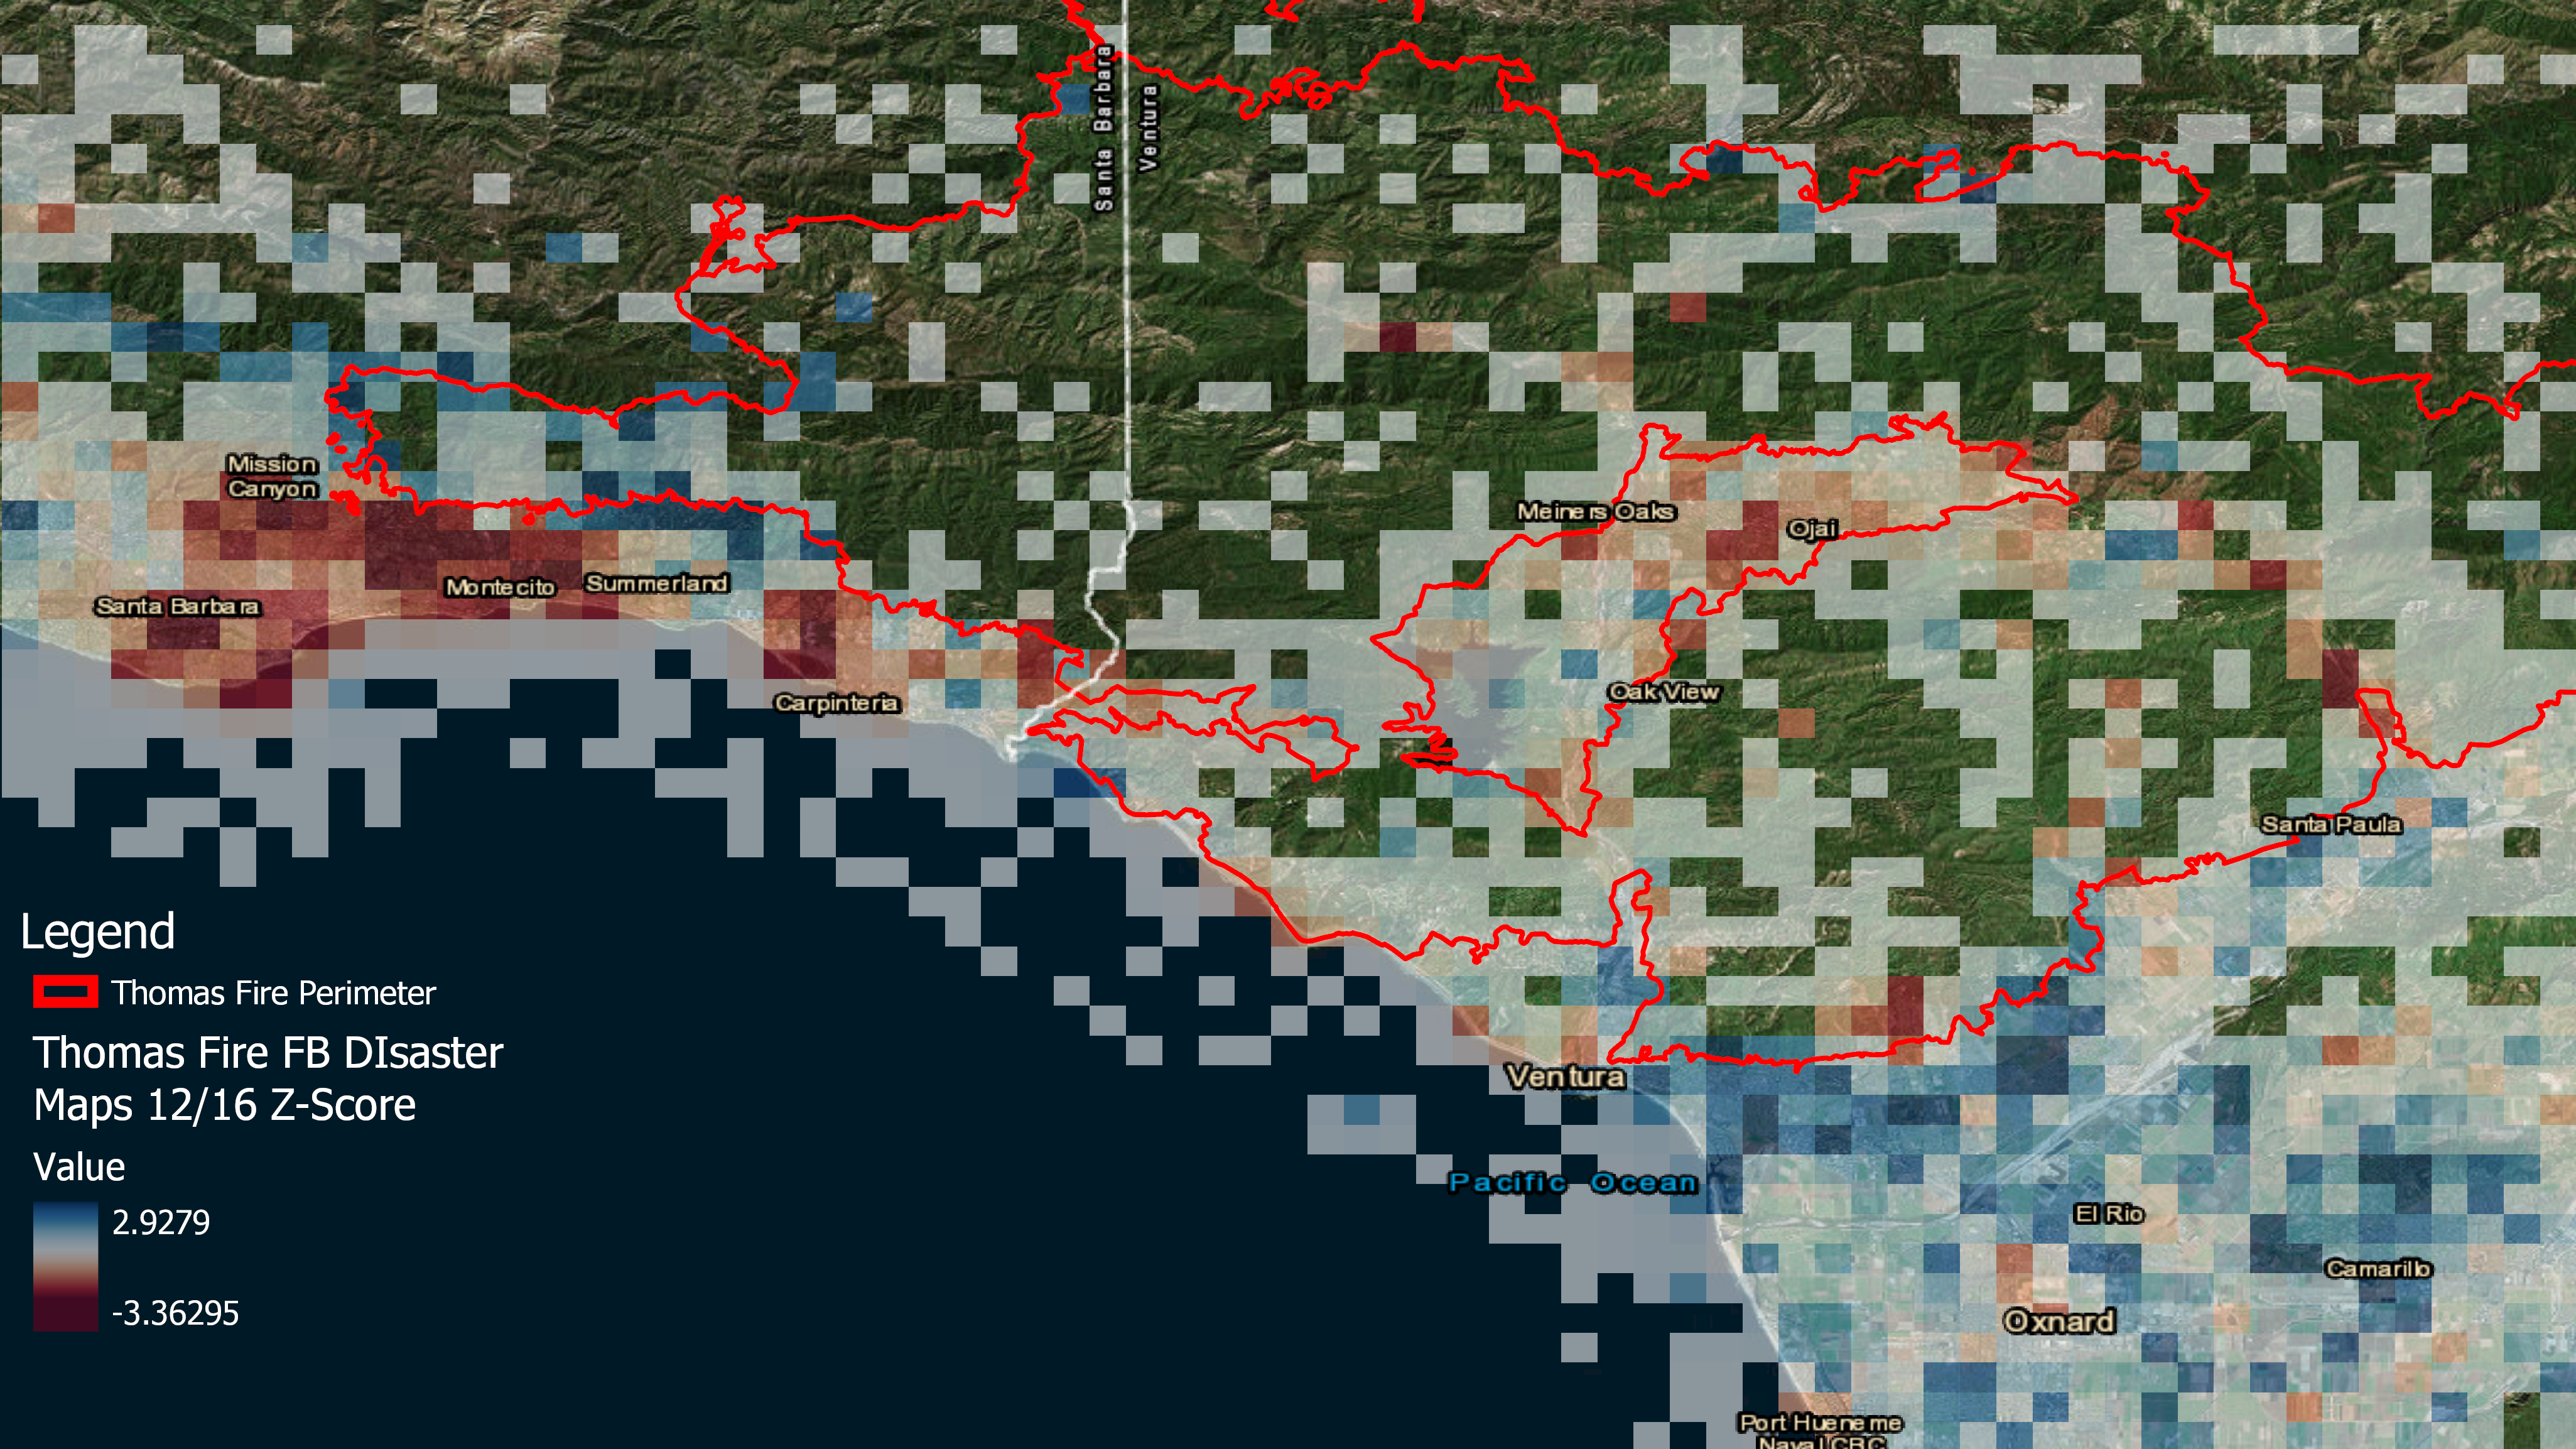 During the Thomas Fire, residents evacuated from areas near the fire boundaries, outlined on this map in red. The squares on the map represent anonymized, aggregated Facebook user locations recorded on December 16, 2018, when the fire was still active. Blue shades represent areas with higher than normal population numbers, and red illustrates lower than normal patterns. The data can be used to illustrate how people move during emergencies, and aid directed accordingly. (Andrew Schroeder/Direct Relief)